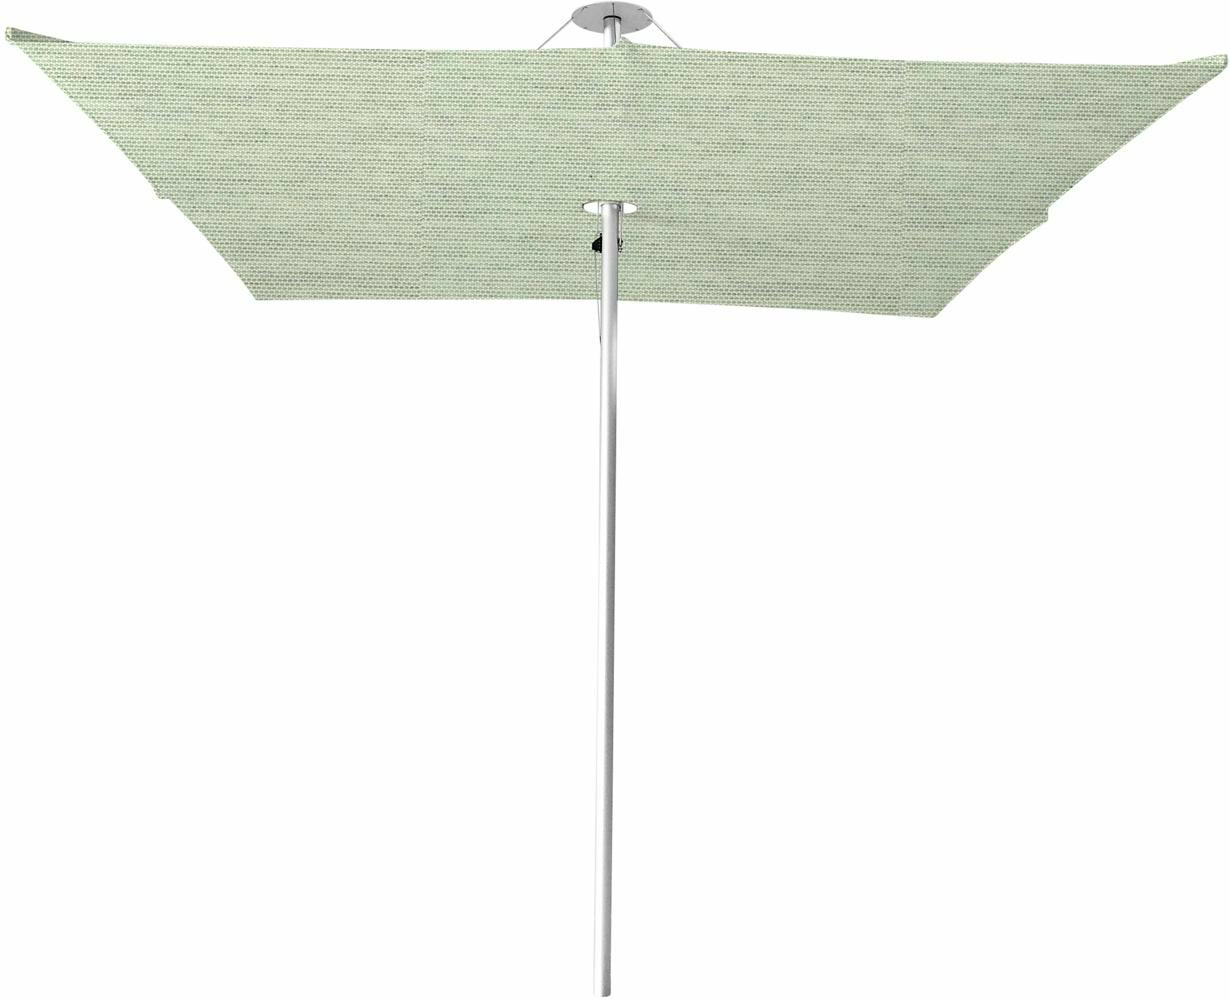 Infina center post umbrella, 3 m square, with frame in Aluminum and Solidum Mint canopy.